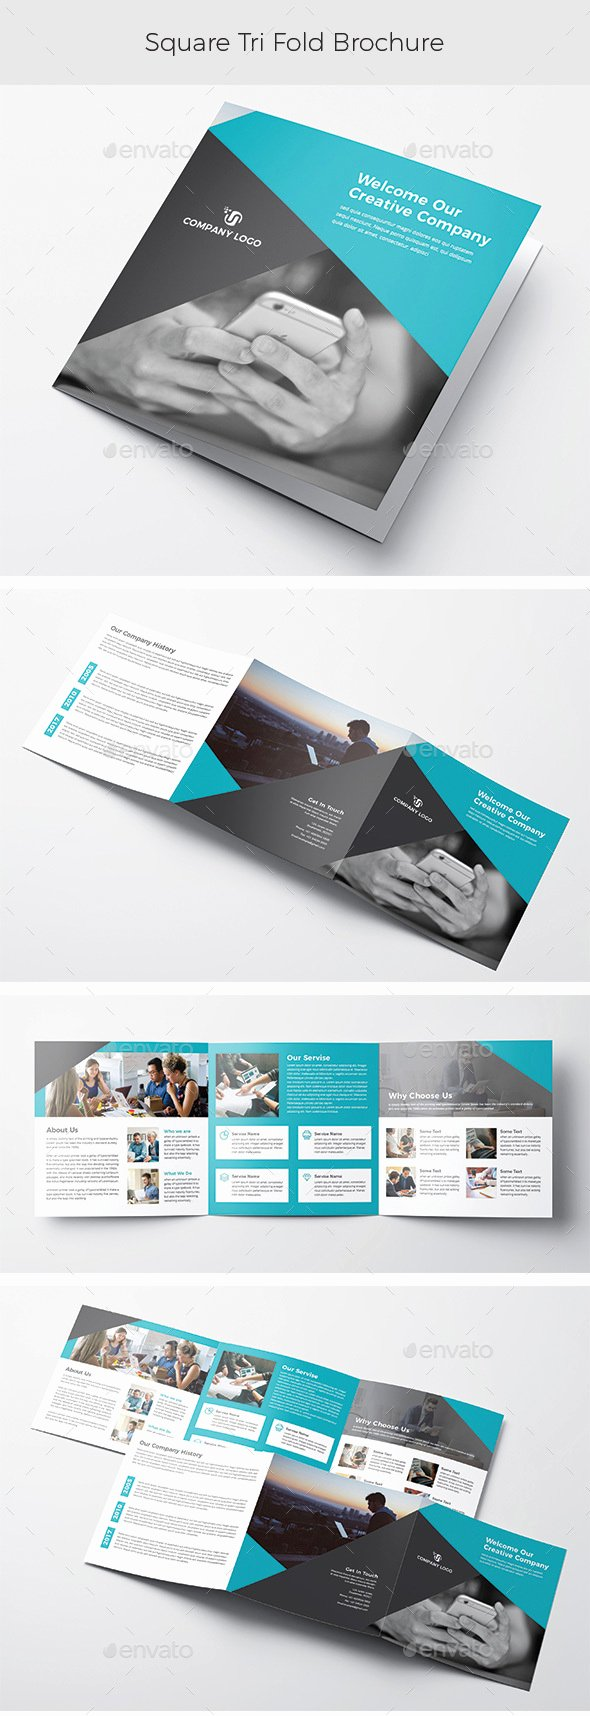 Square Trifold Brochure Template Luxury Square Trifold Brochure by Graphicstar10